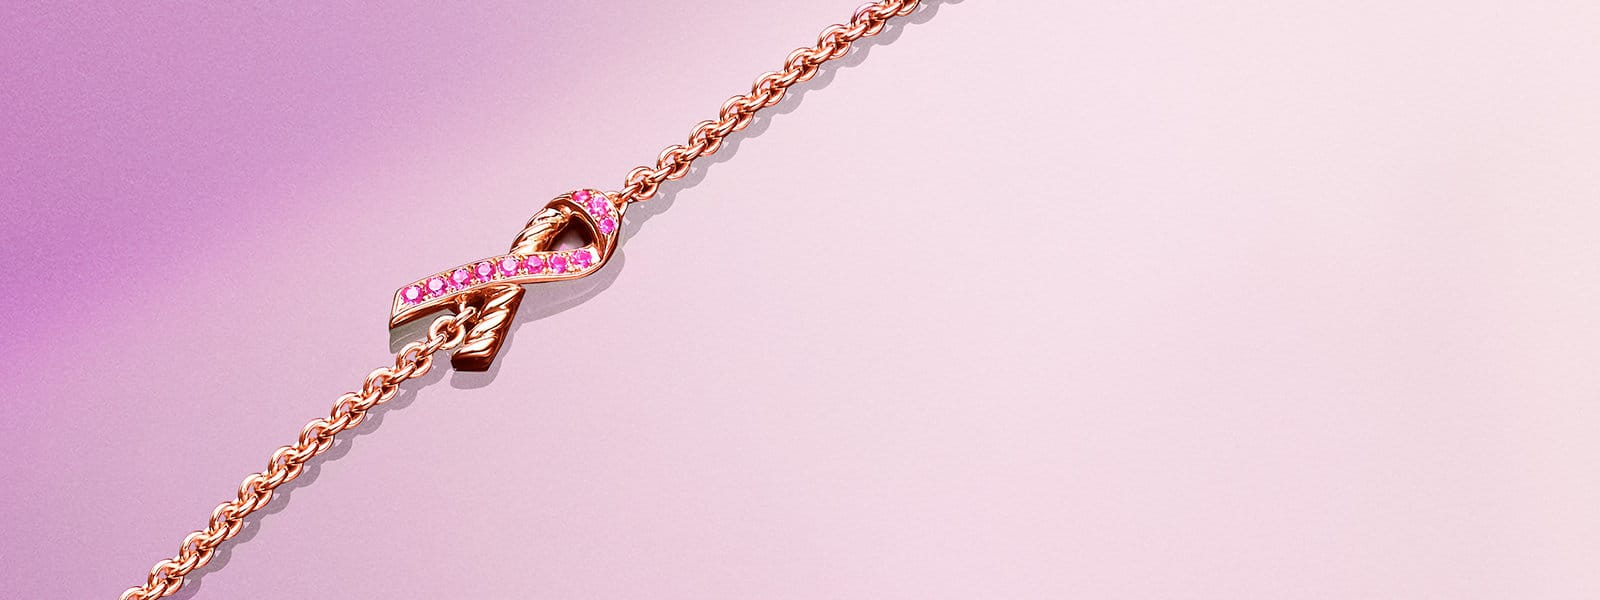 A color photograph shows a David Yurman limited-edition BCRF pink ribbon bracelet on top of a deep pink and purple angular surface with a while line running parallel to the bracelet. The bracelet is crafted from 18K rose gold with pink sapphires.